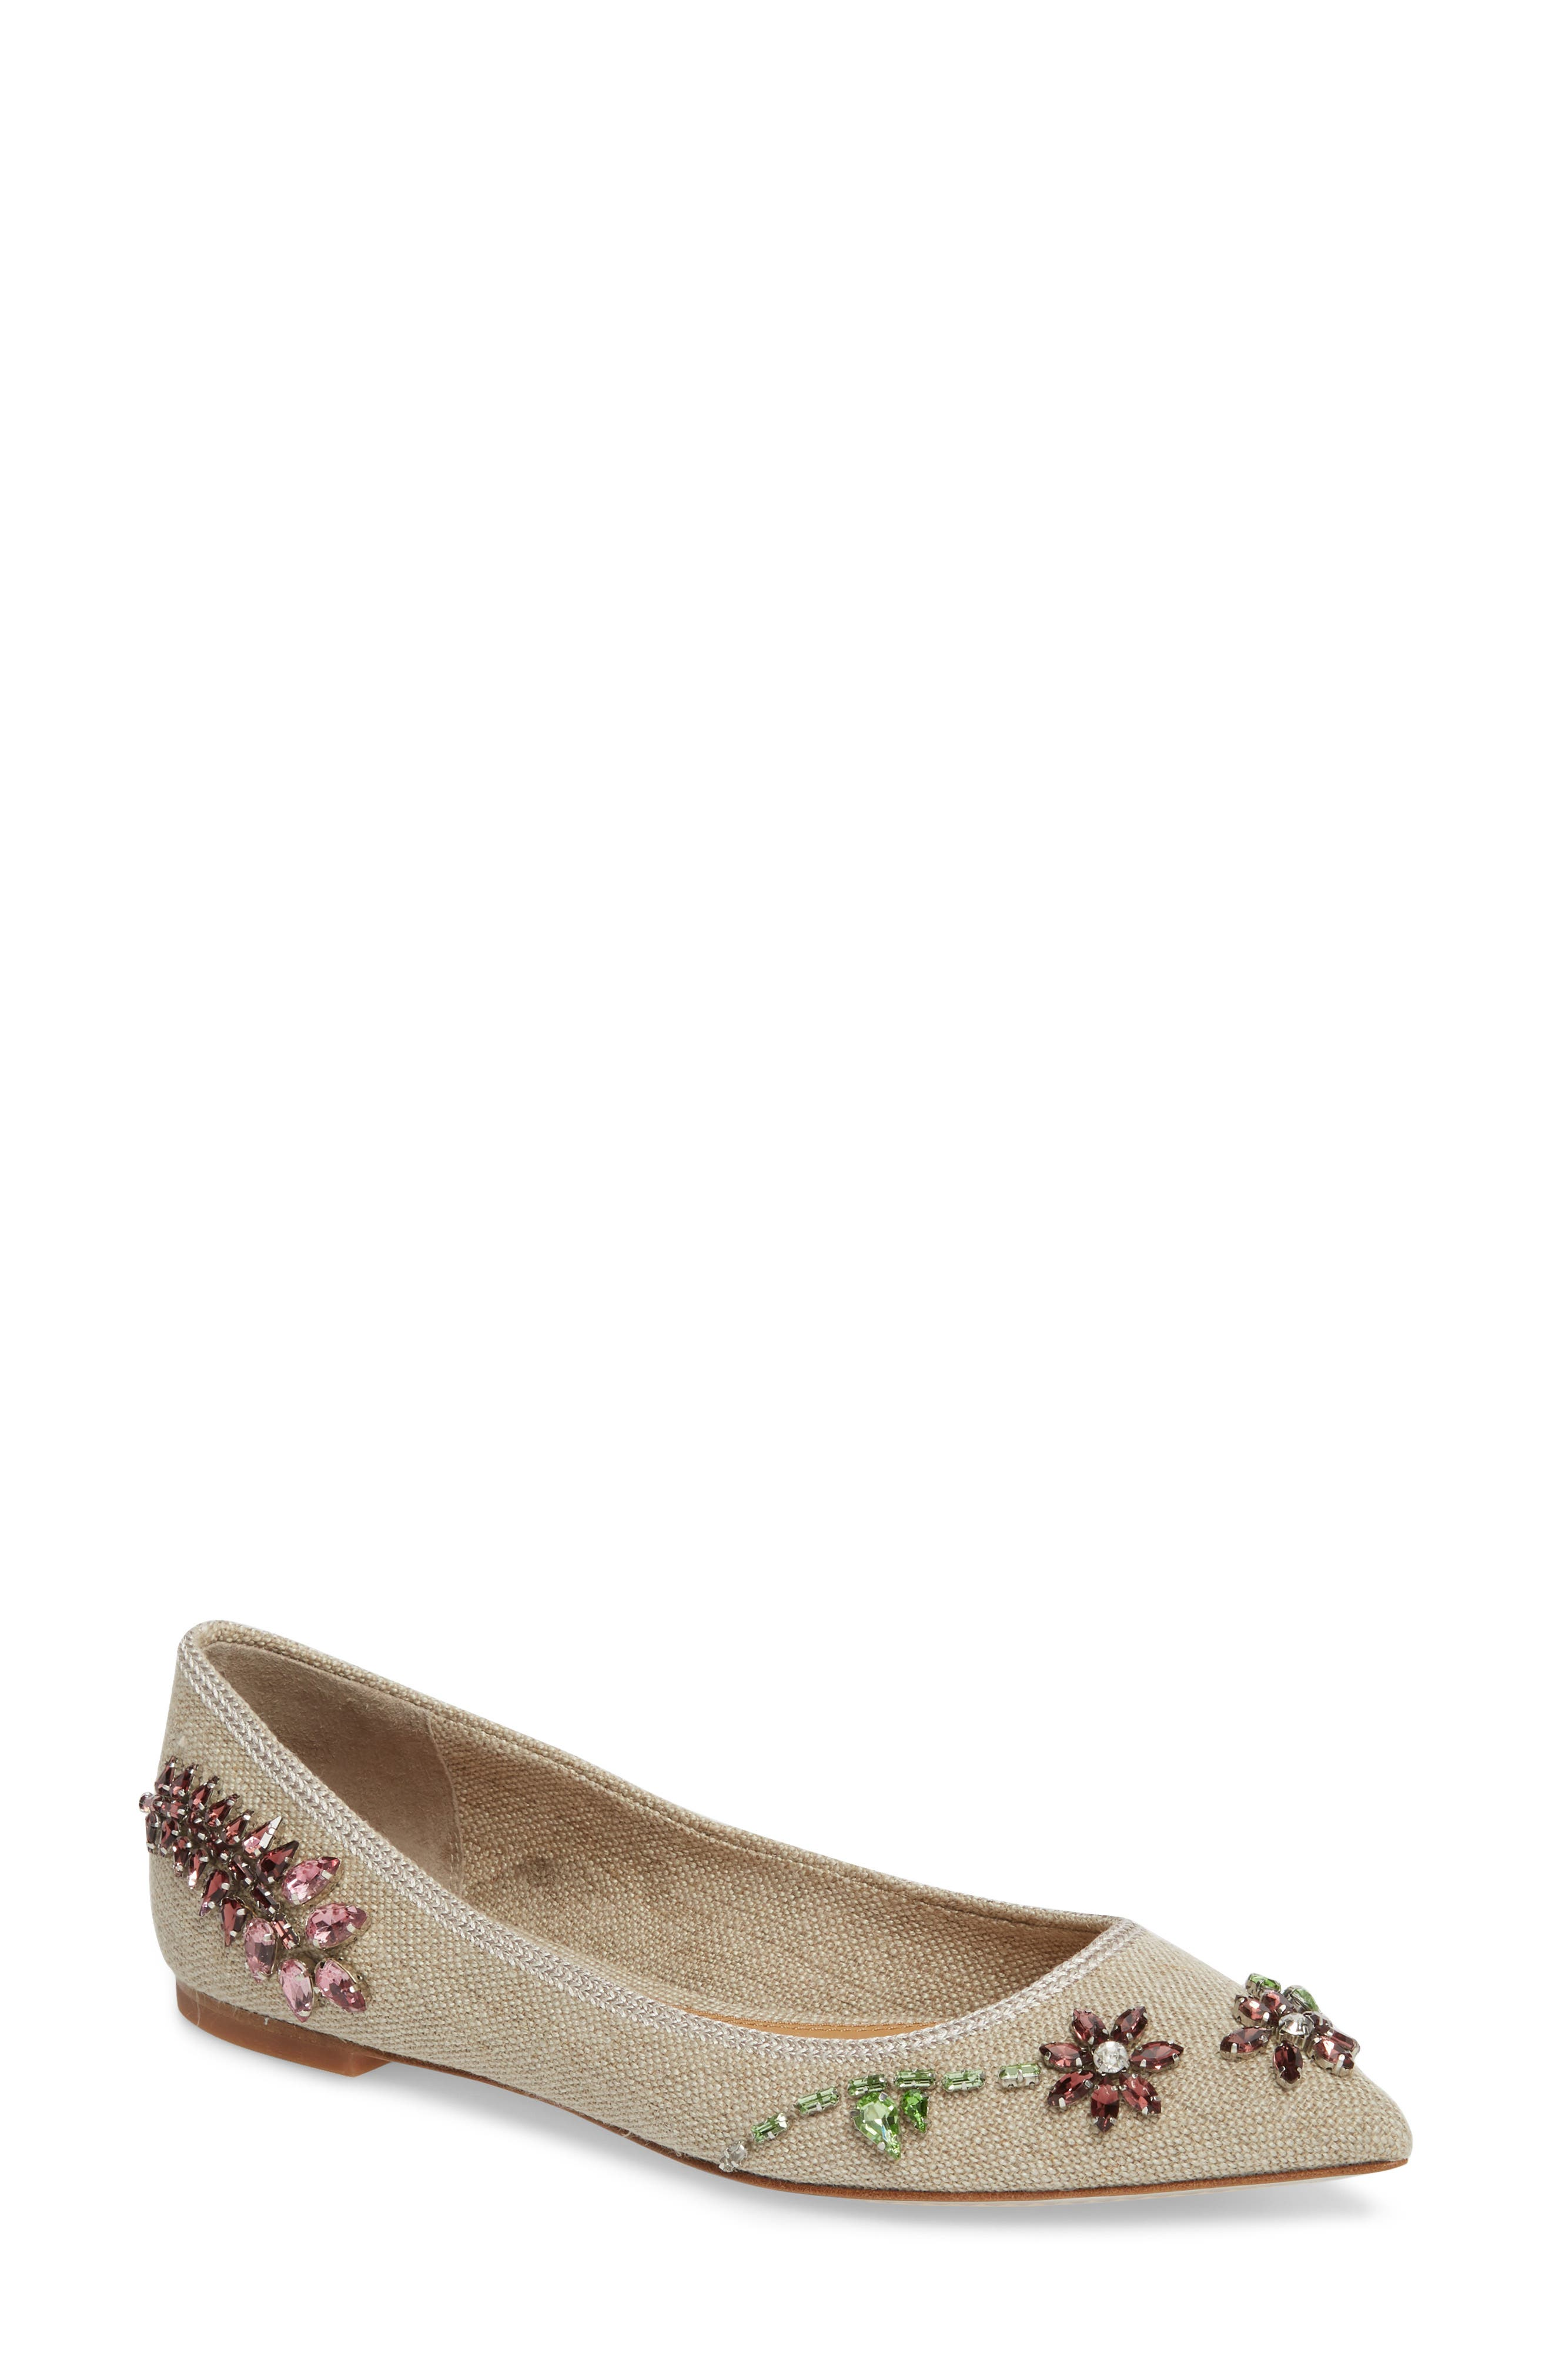 Meadow Embellished Pointy Toe Flat,                             Main thumbnail 1, color,                             Natural/ Multi Color